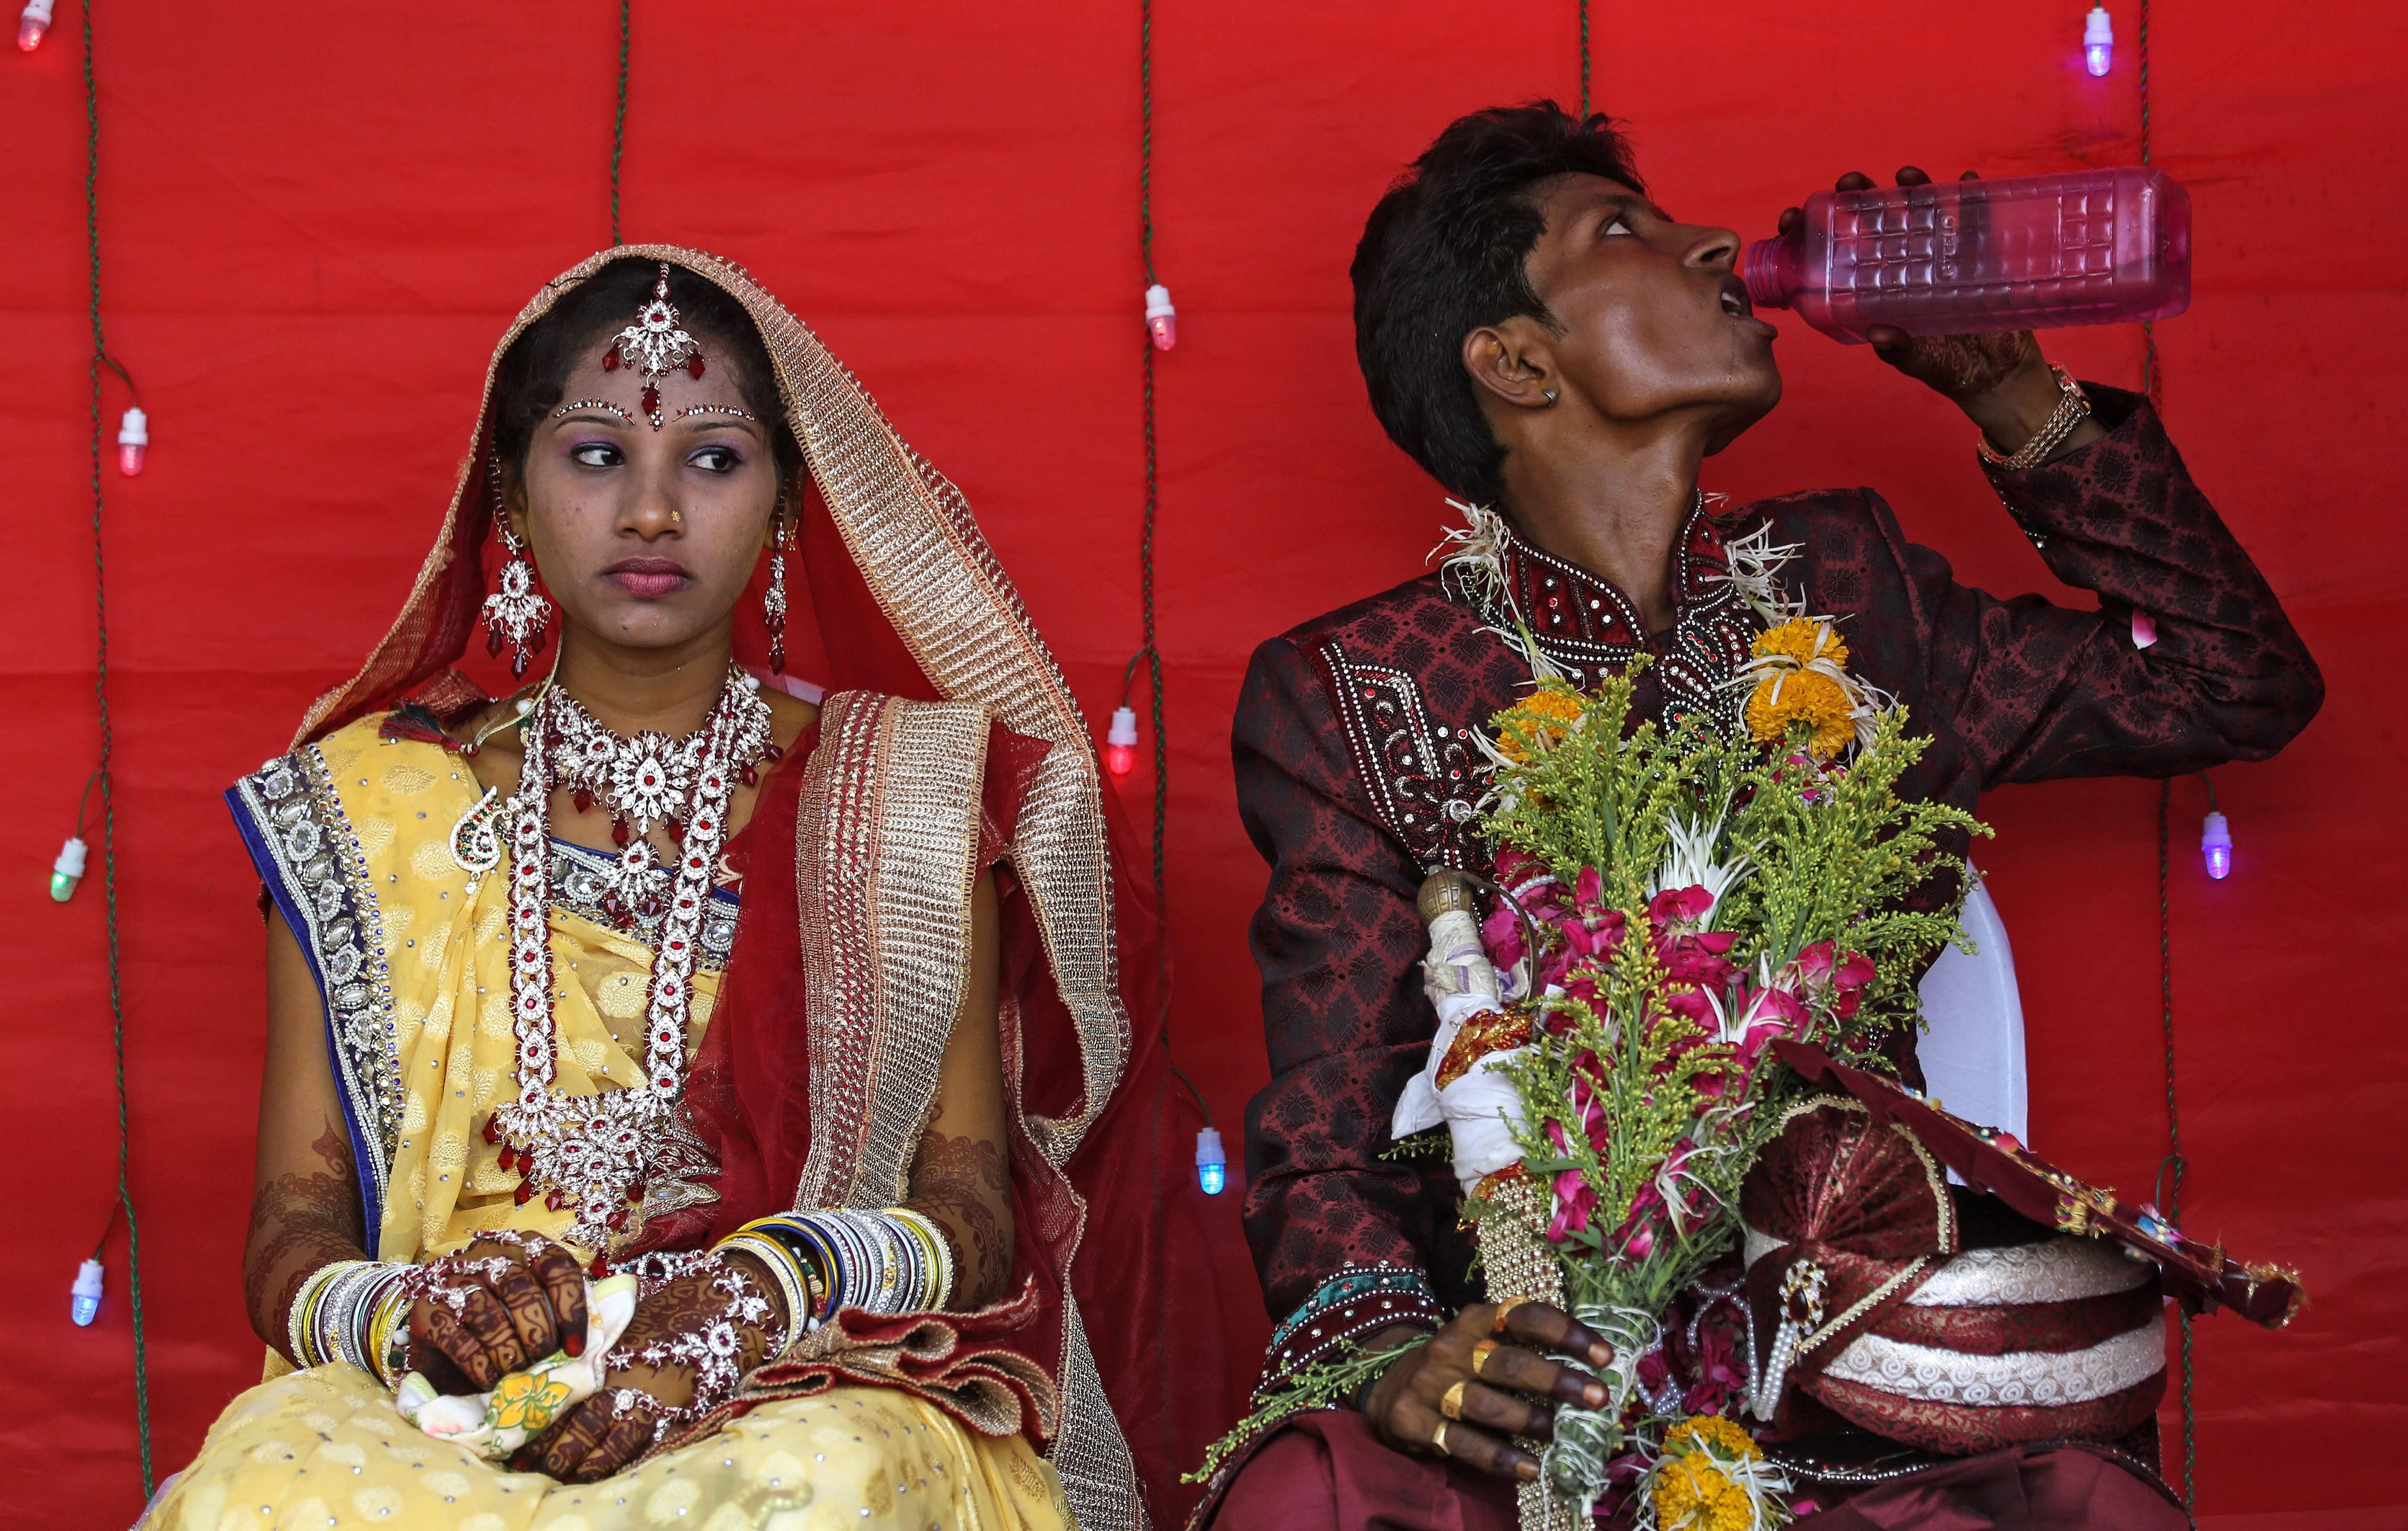 Indian Marriage And Dating Sites, search by popular matchmaking sites